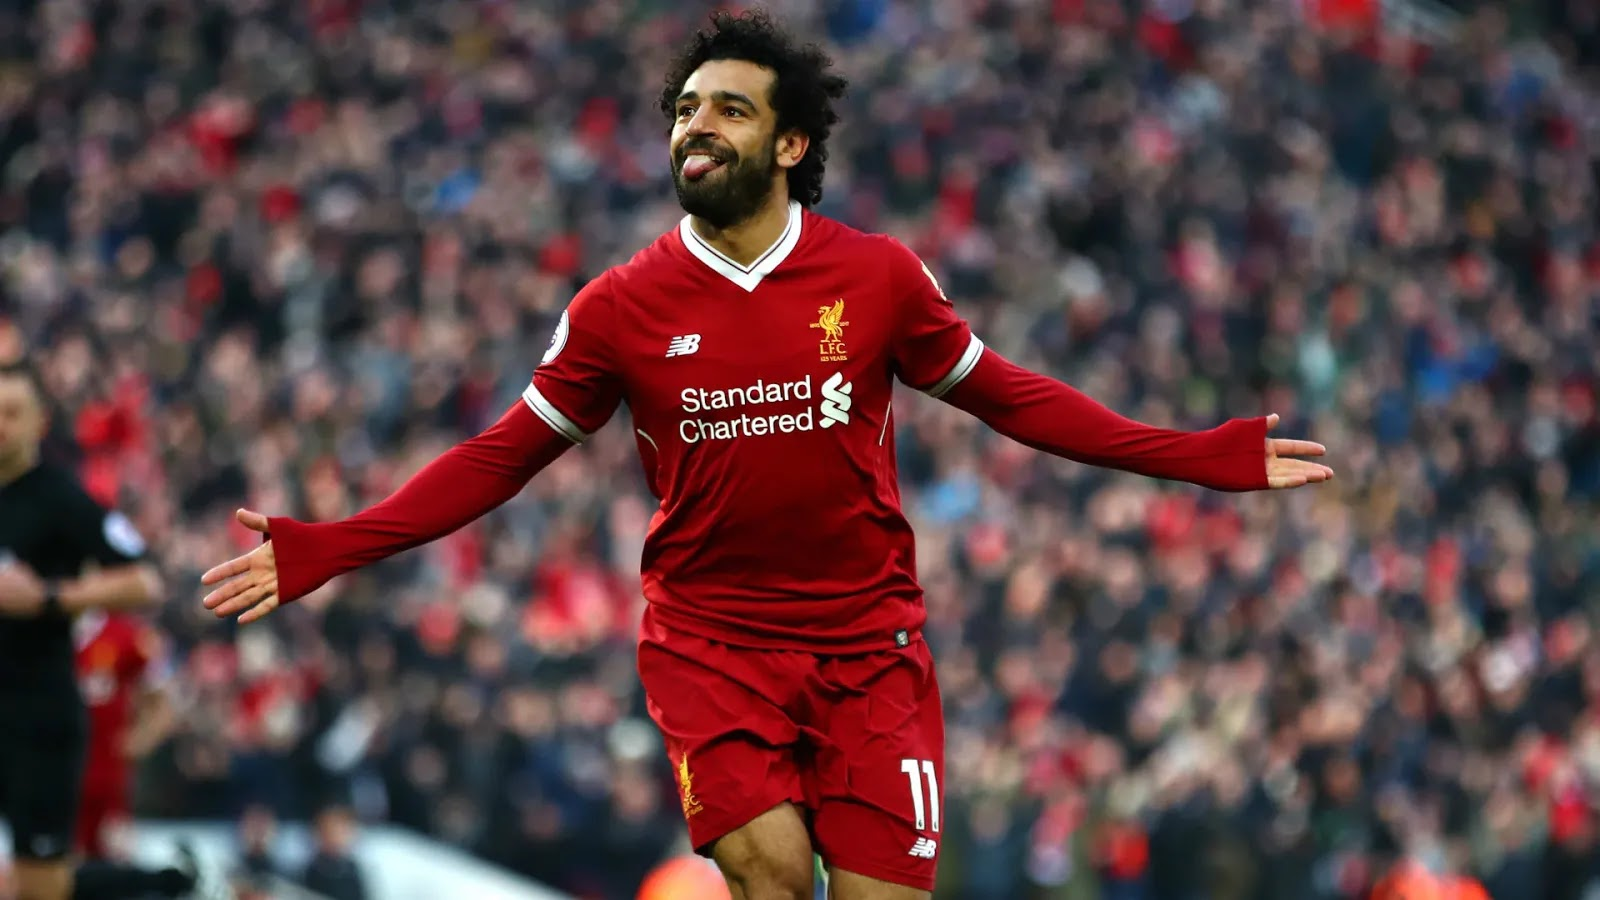 Mohamed Salah Wallpaper HD Egypt